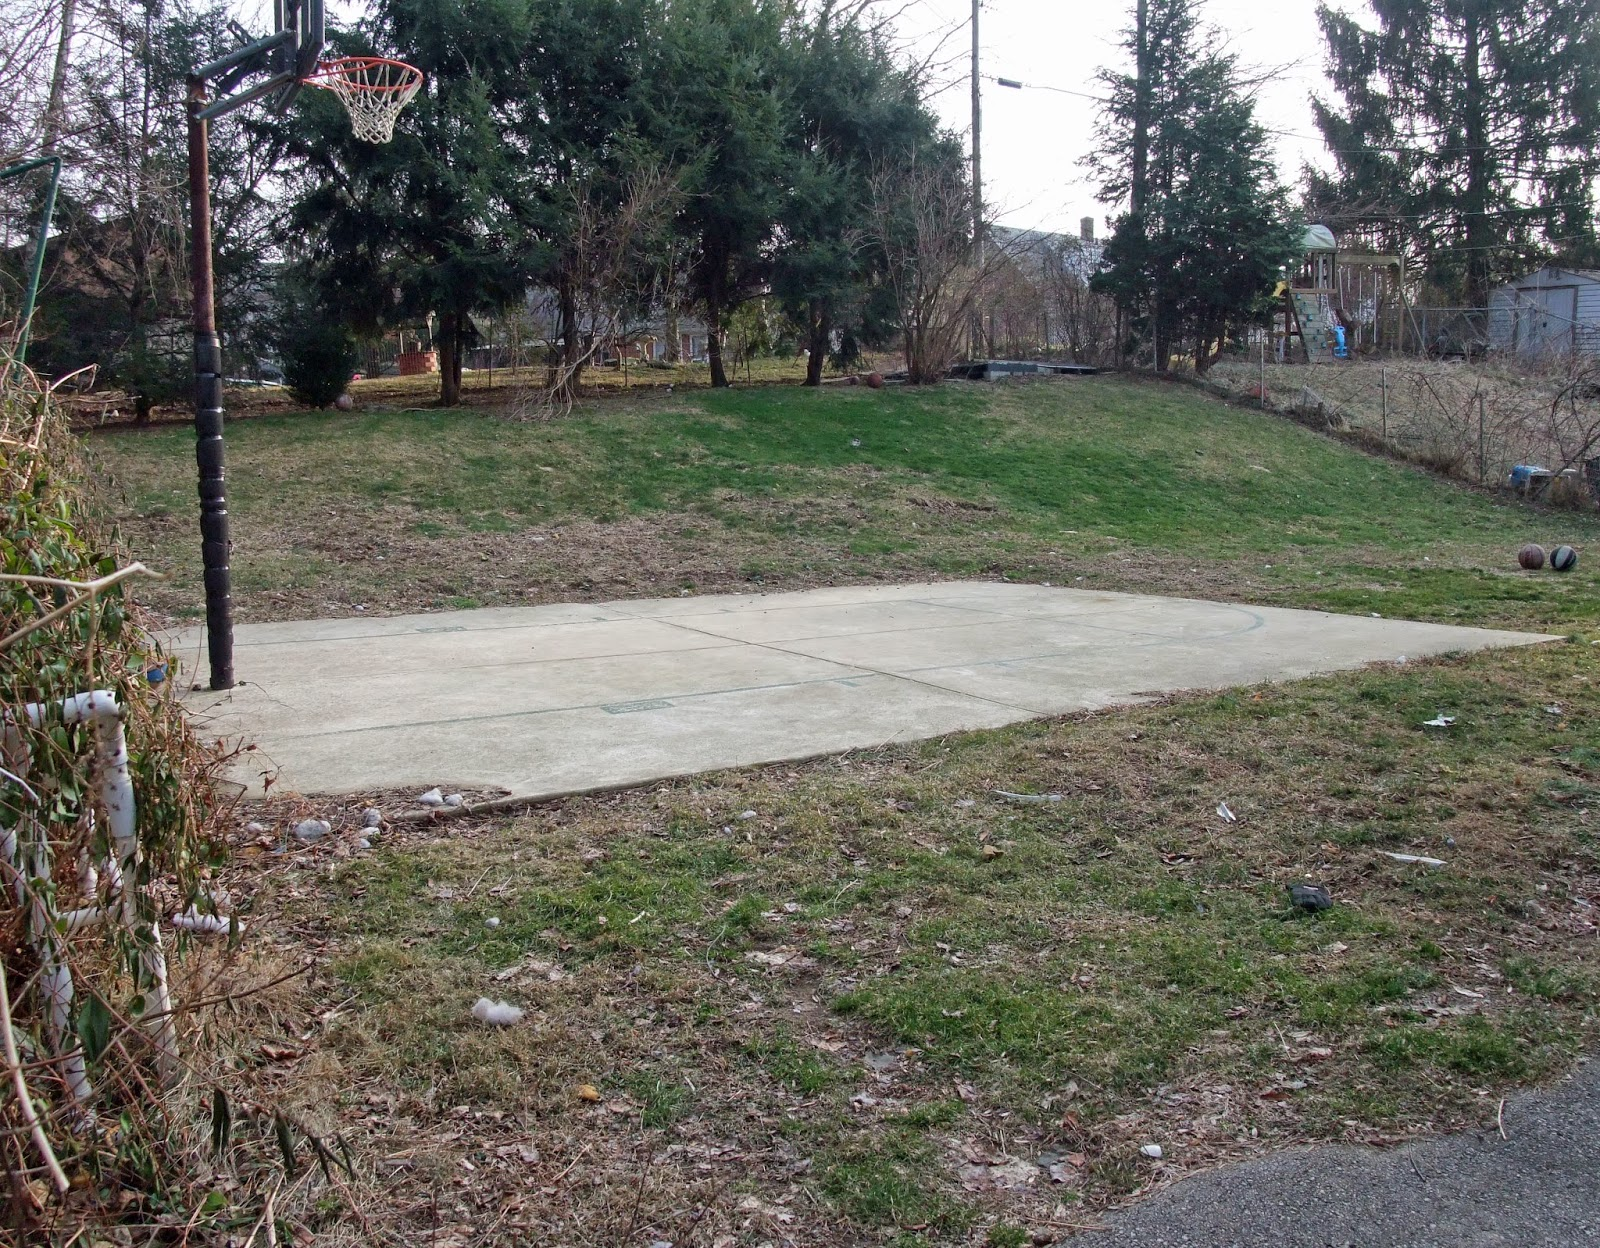 Penn state extension philadelphia master gardeners for Small basketball court